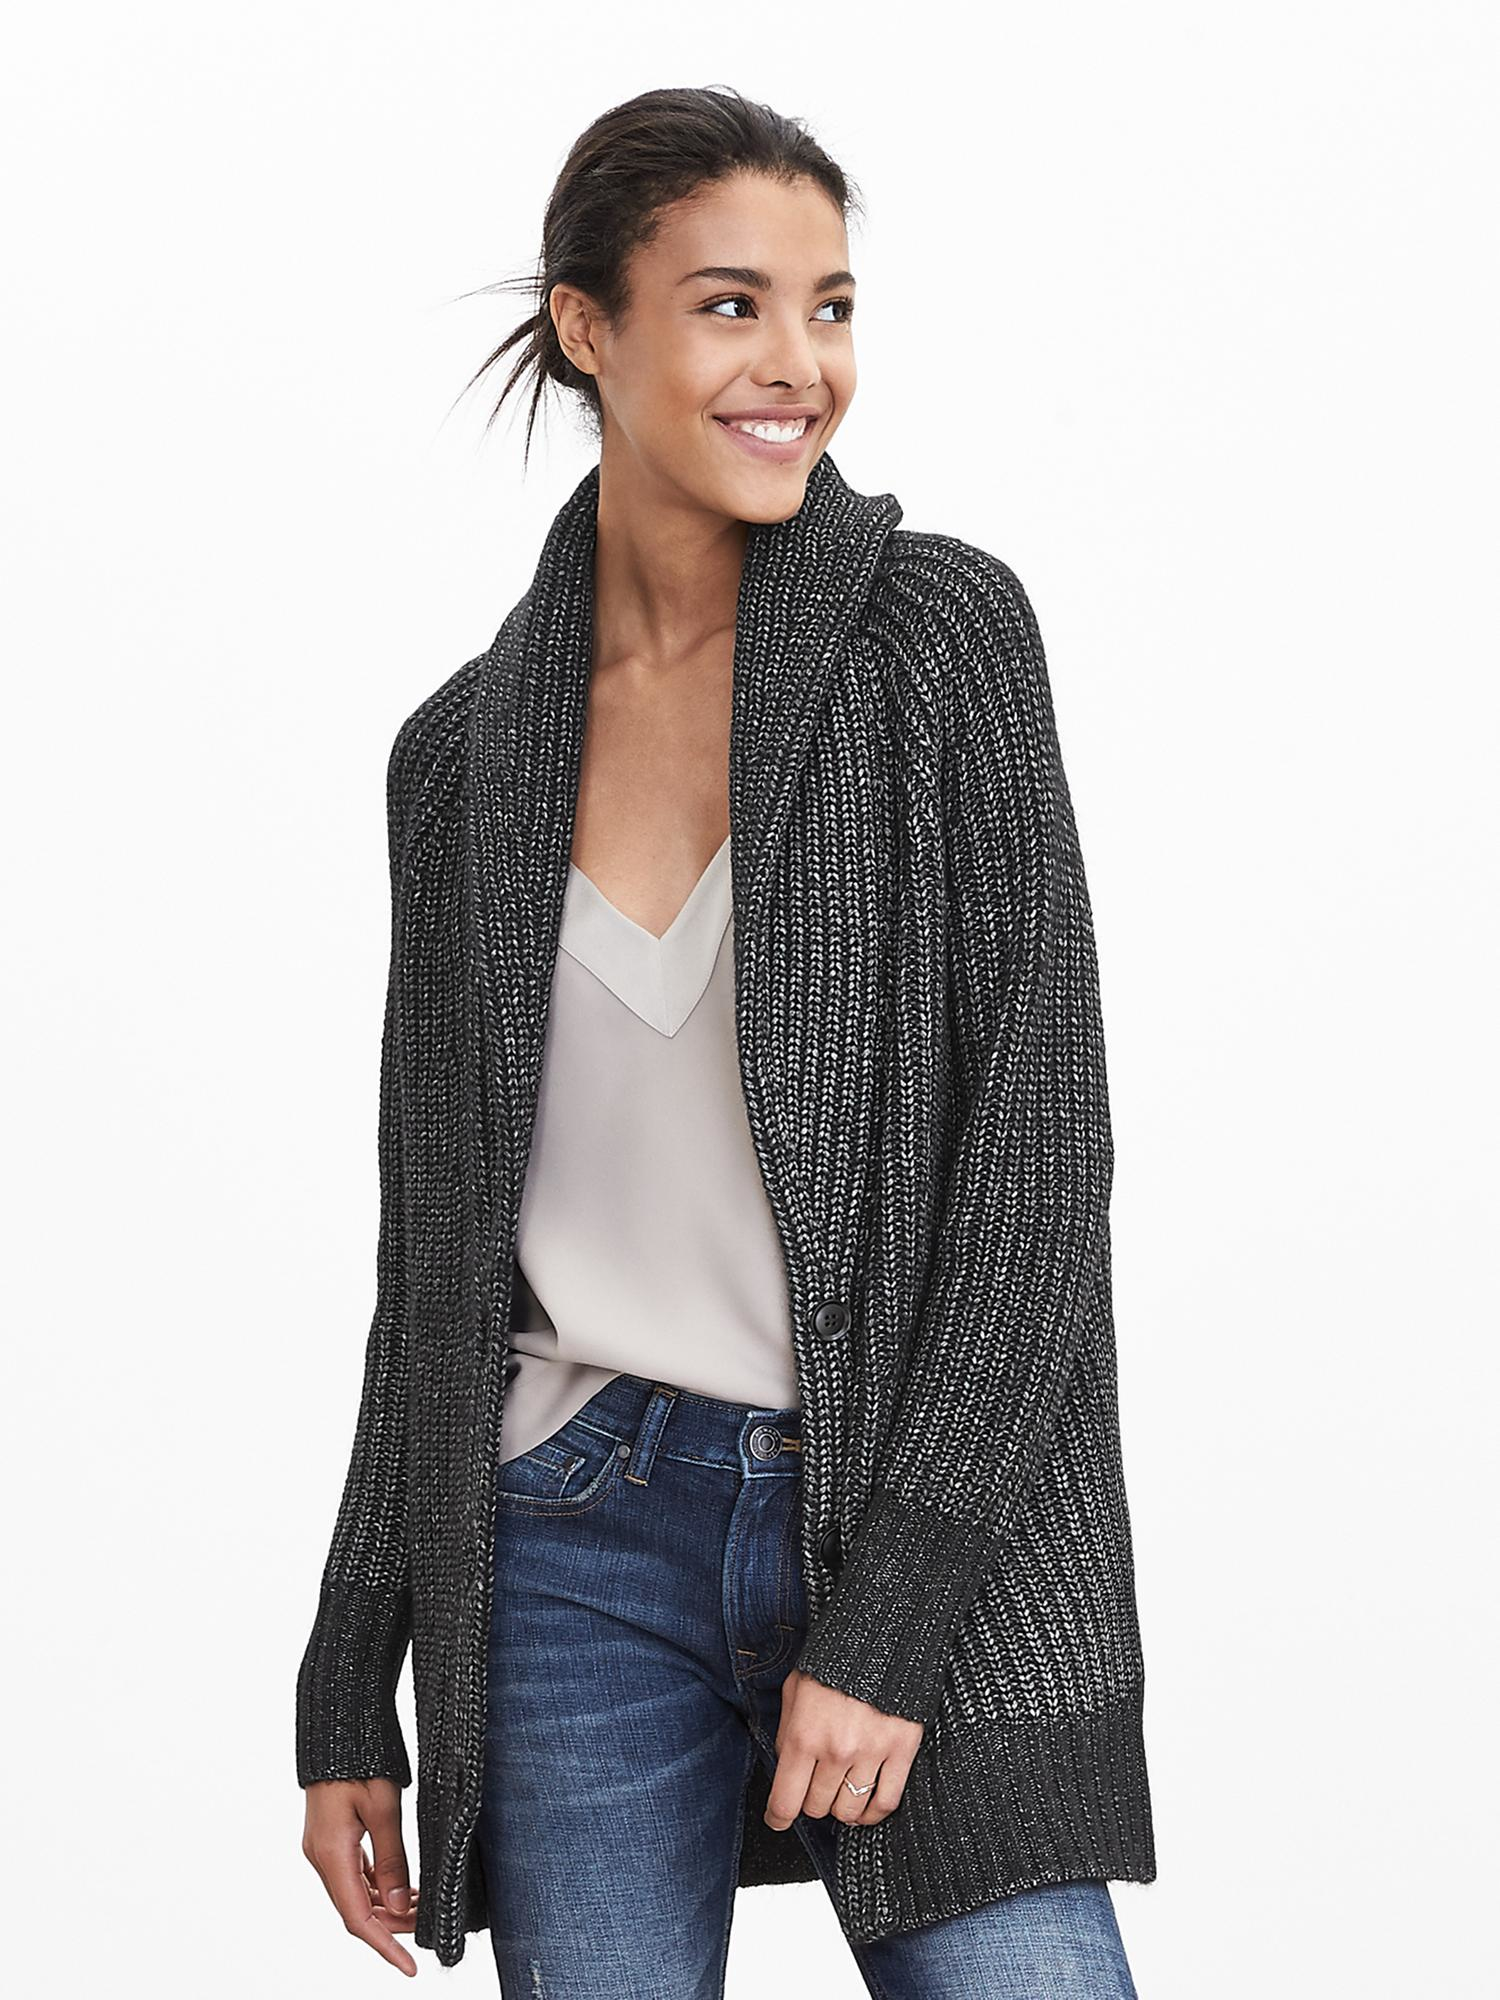 Banana Republic's always been a go-to of mine for basics, especially when I'm looking for something polished. This black cardigan has already completed two of my outfits since I received it last week and I already know it will be featured in many looks to come, especially with spring on the way.